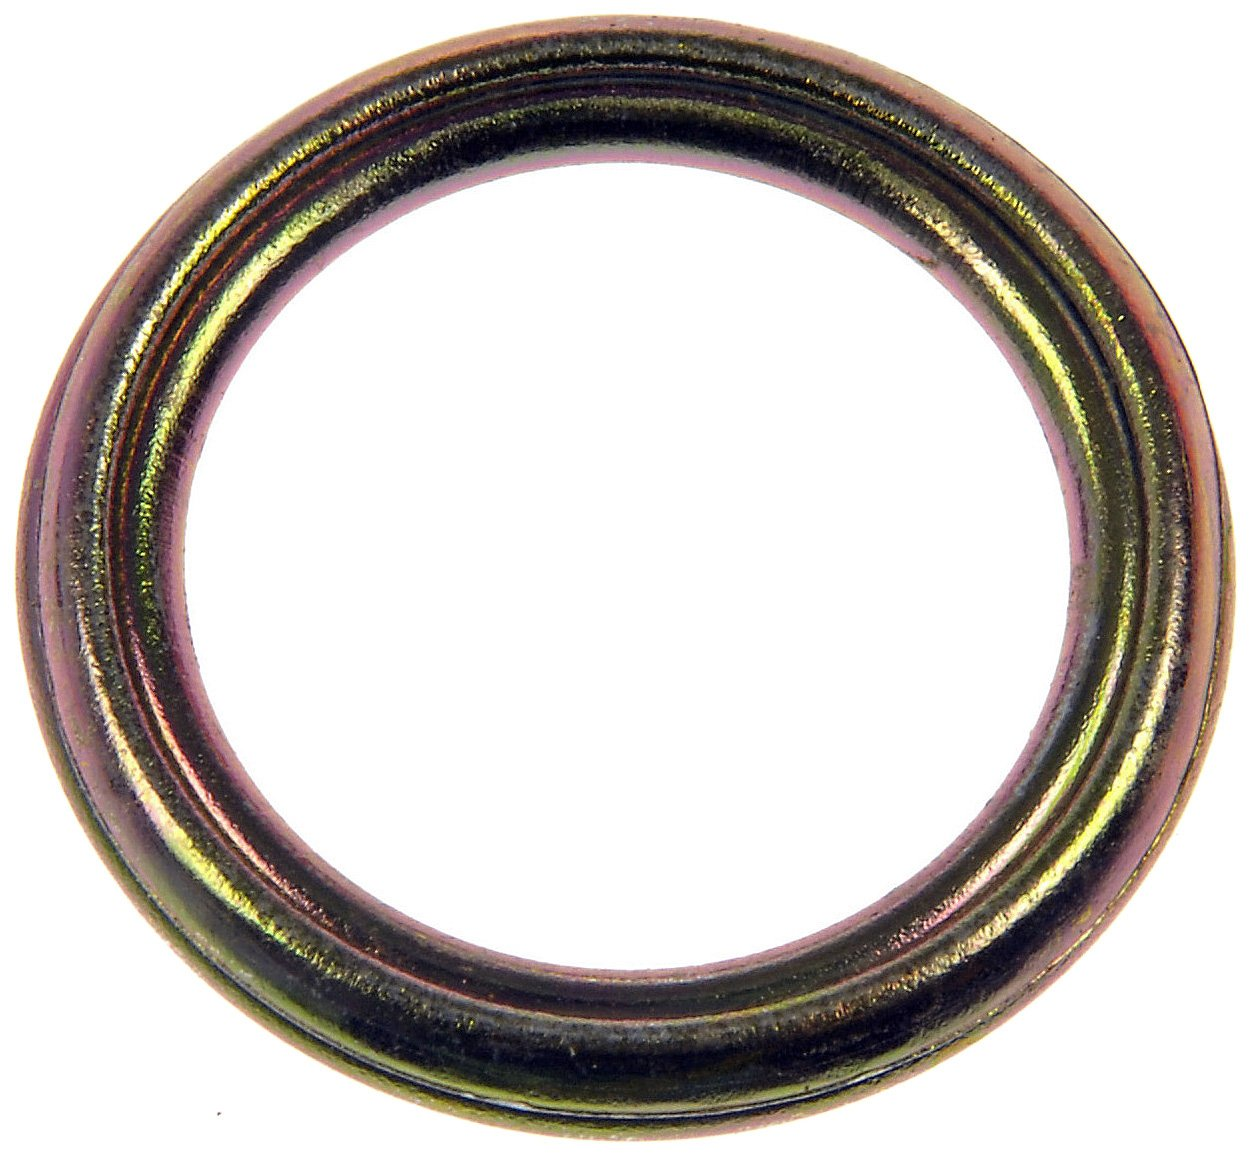 Dorman 095-141 AutoGrade Crush Oil Plug Gasket